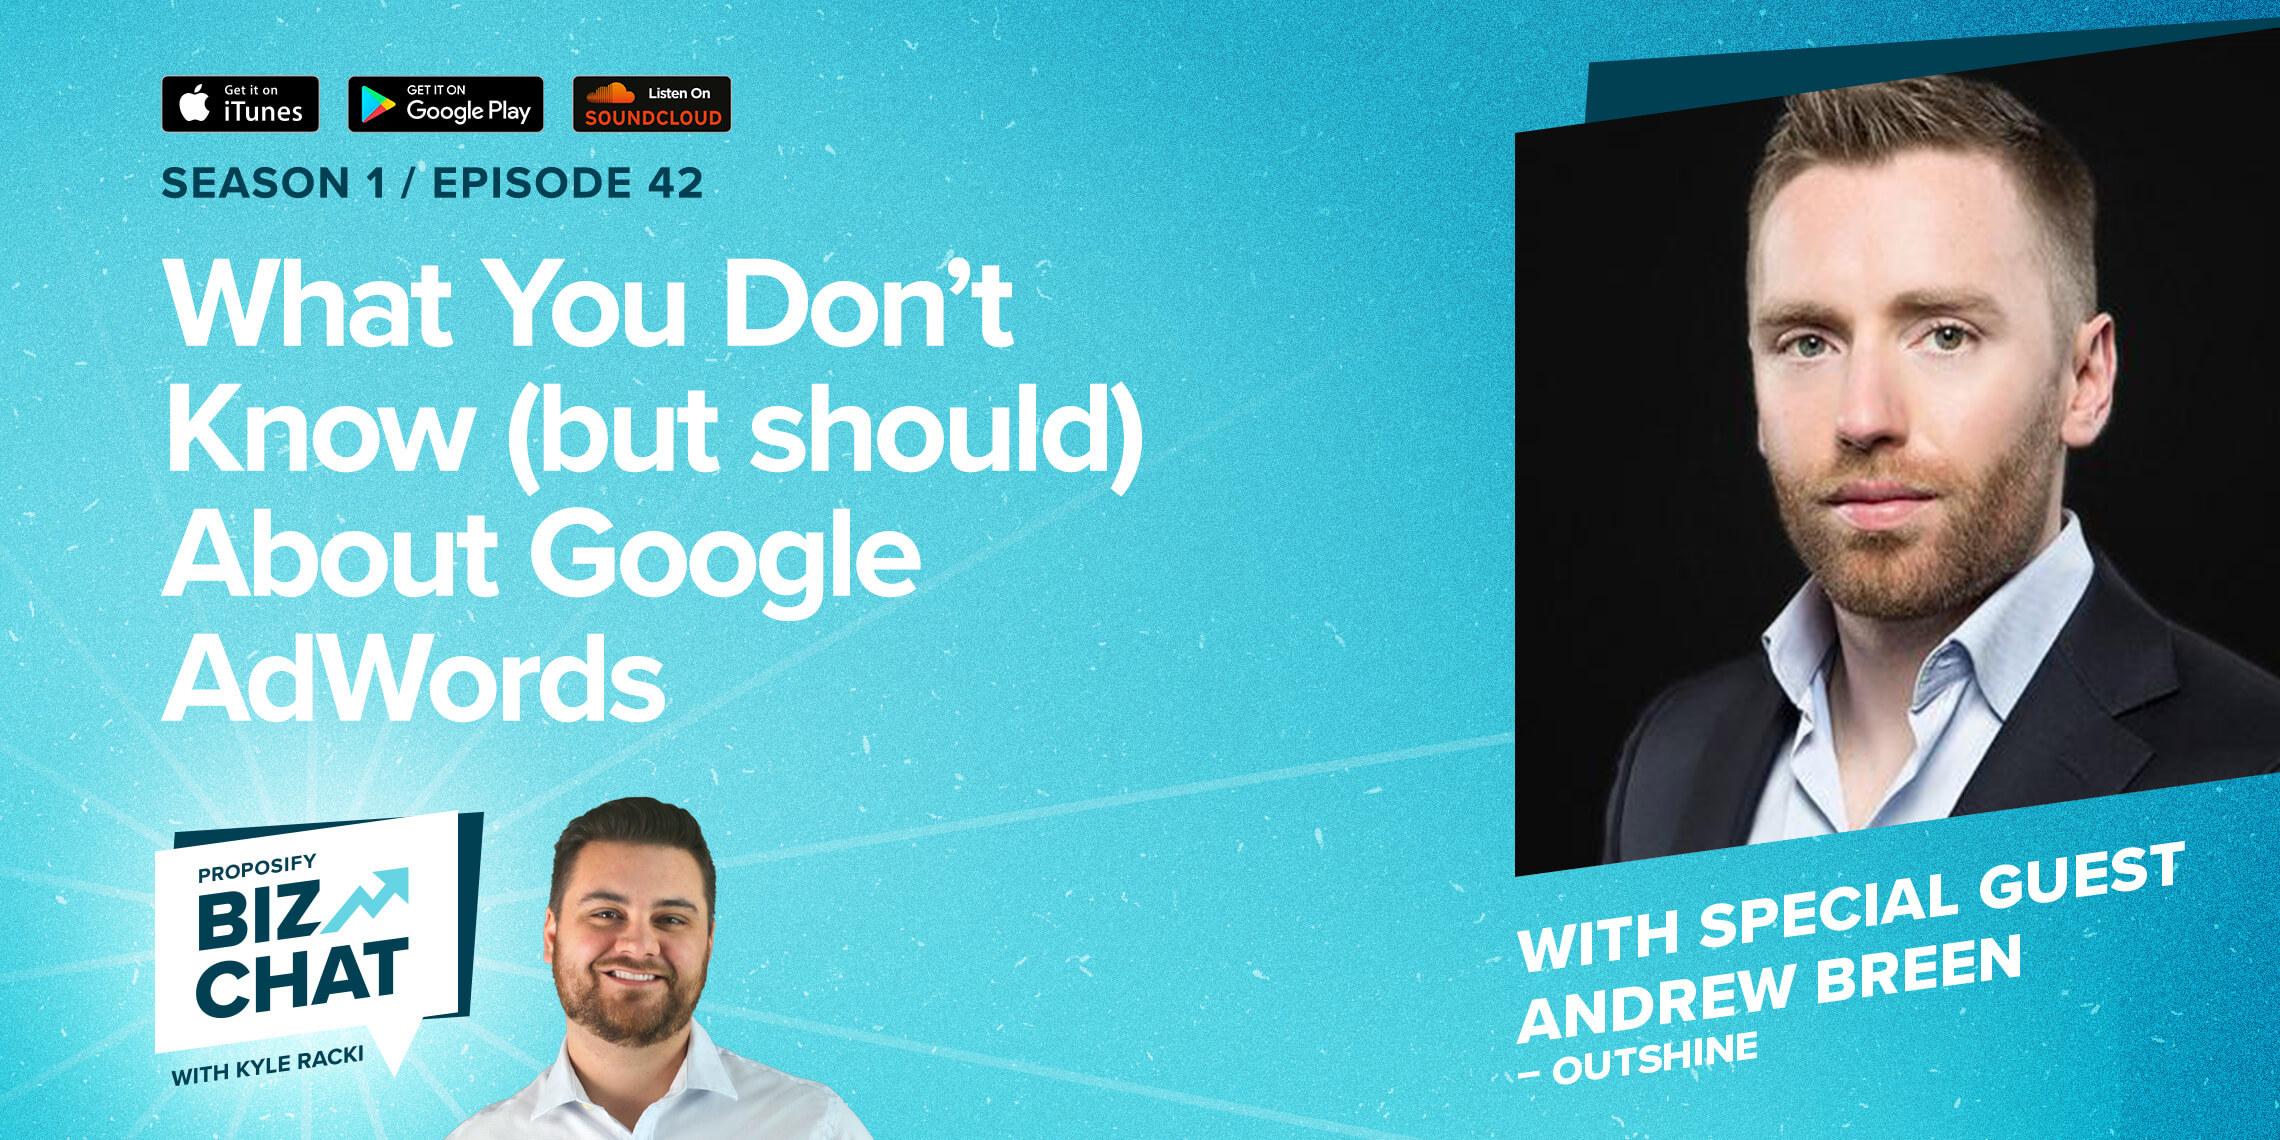 What You Don't Know (but should) About Google AdWords